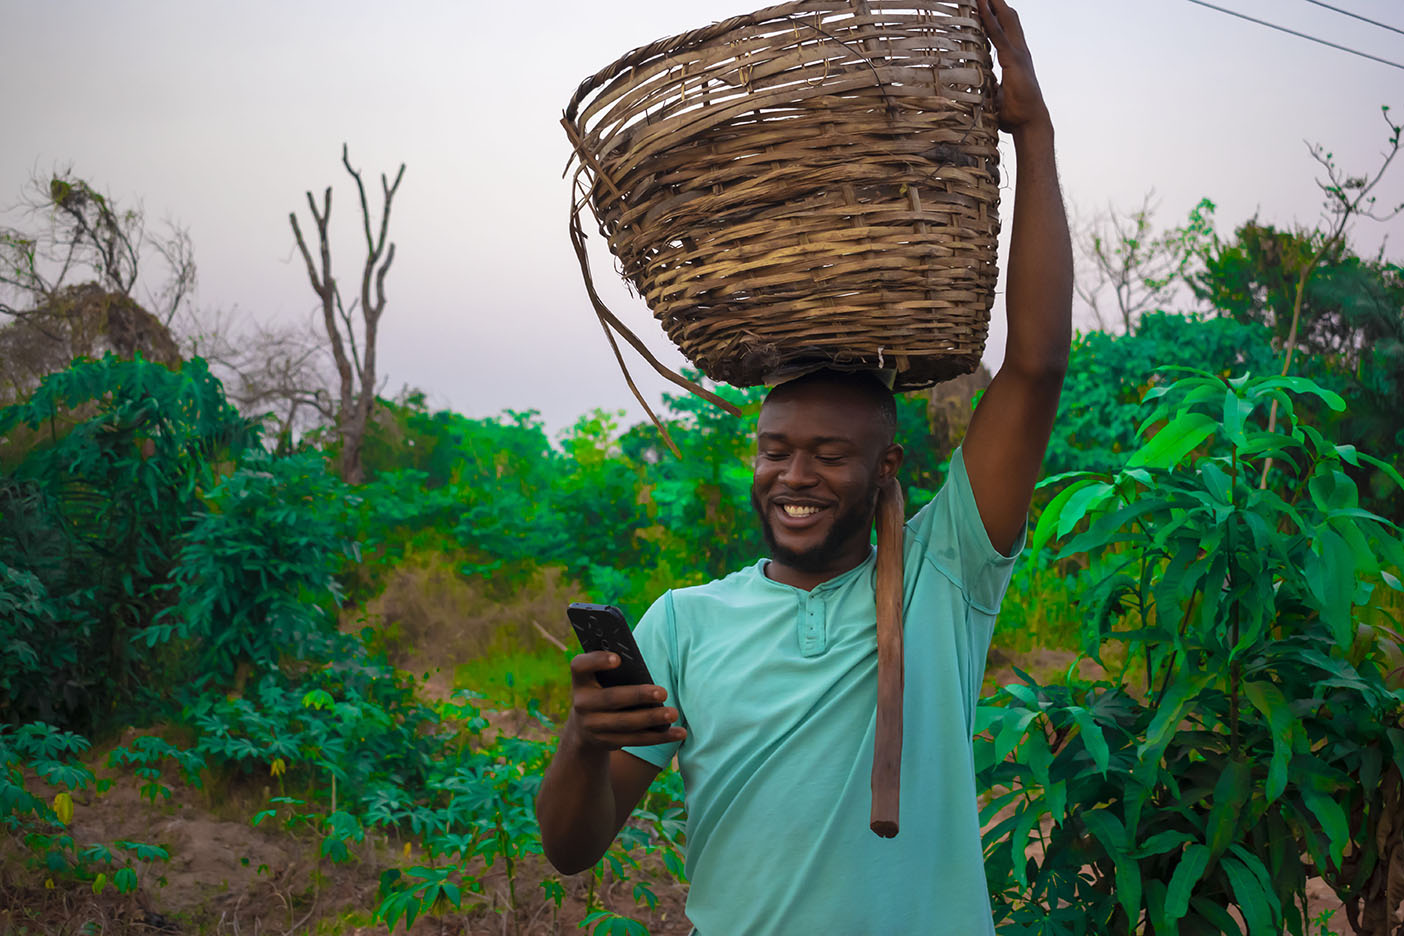 Over 500 million small-scale farmers produce over 70 percent of the world's food and spend over $400 billion on farm inputs and other services, annually. Yet, they are often ignored by the global markets, services and leaders creating solutions to agricultural problems.